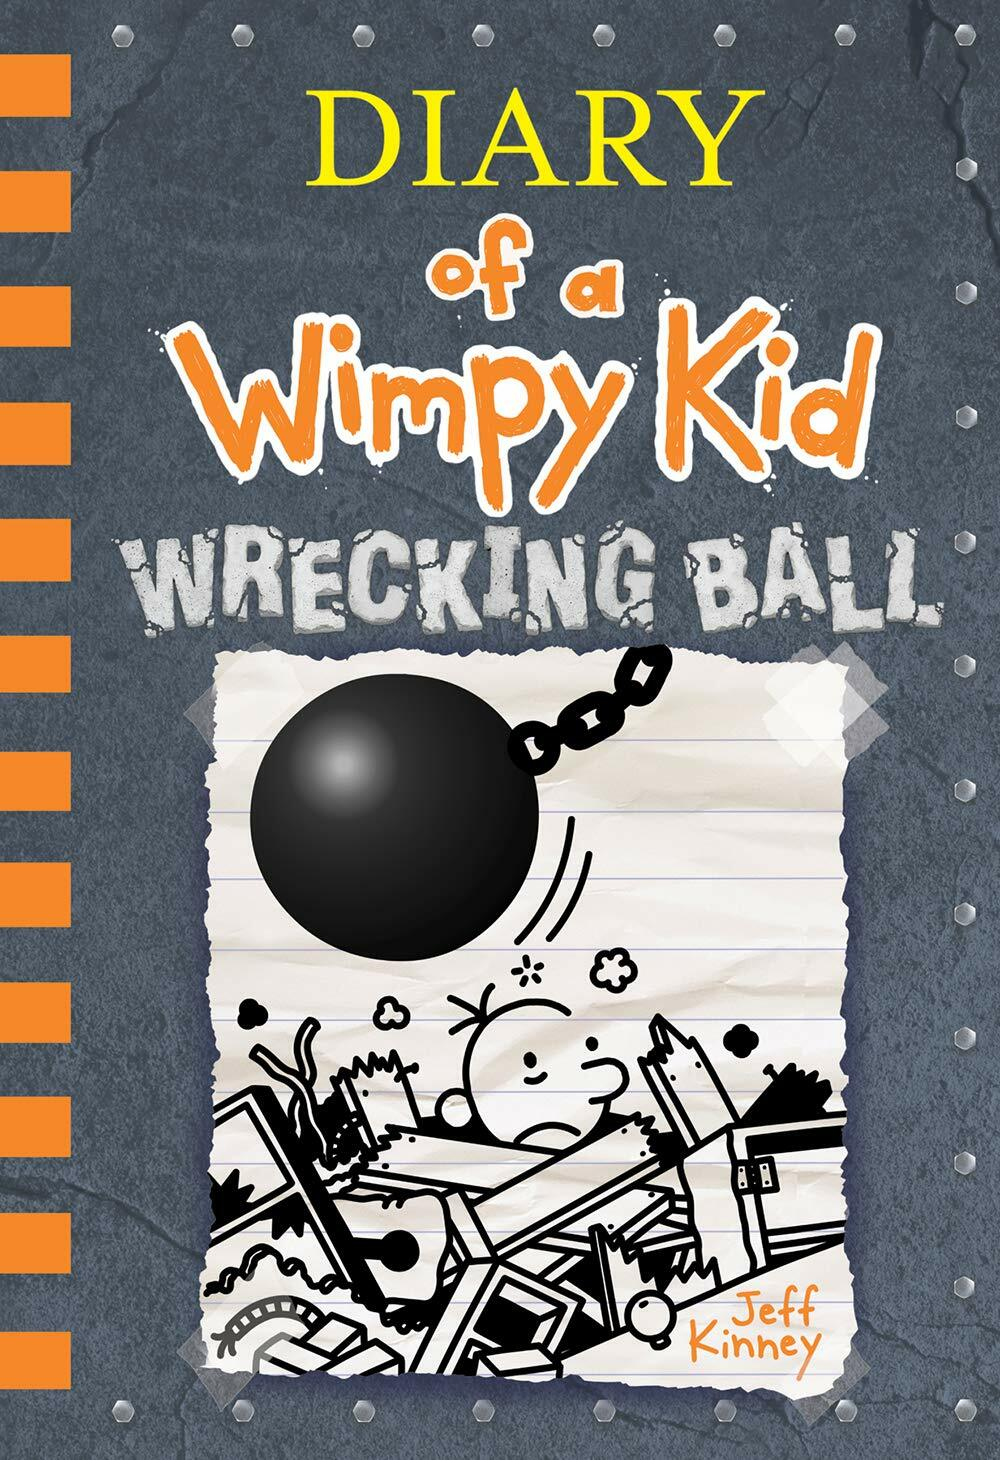 Diary of a Wimpy Kid #14 : Wrecking Ball (Hardcover)